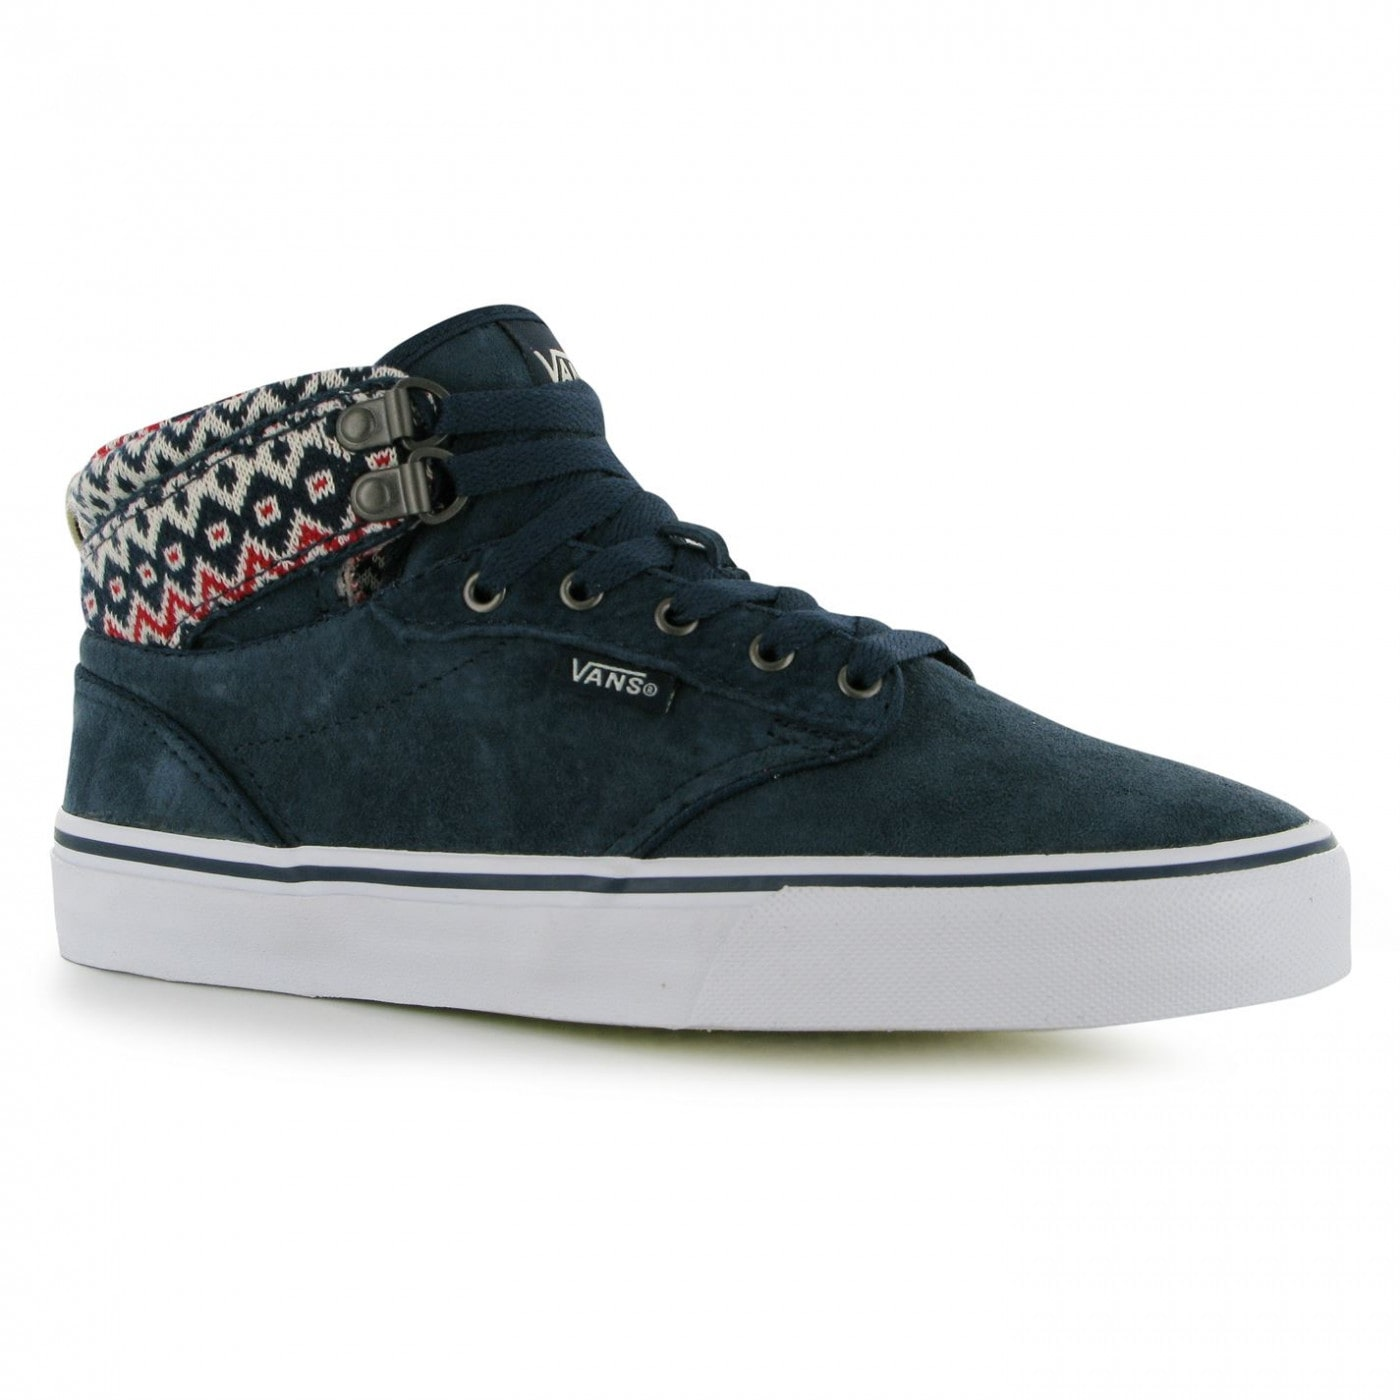 Vans Atwood Hi Top Trainers Ladies